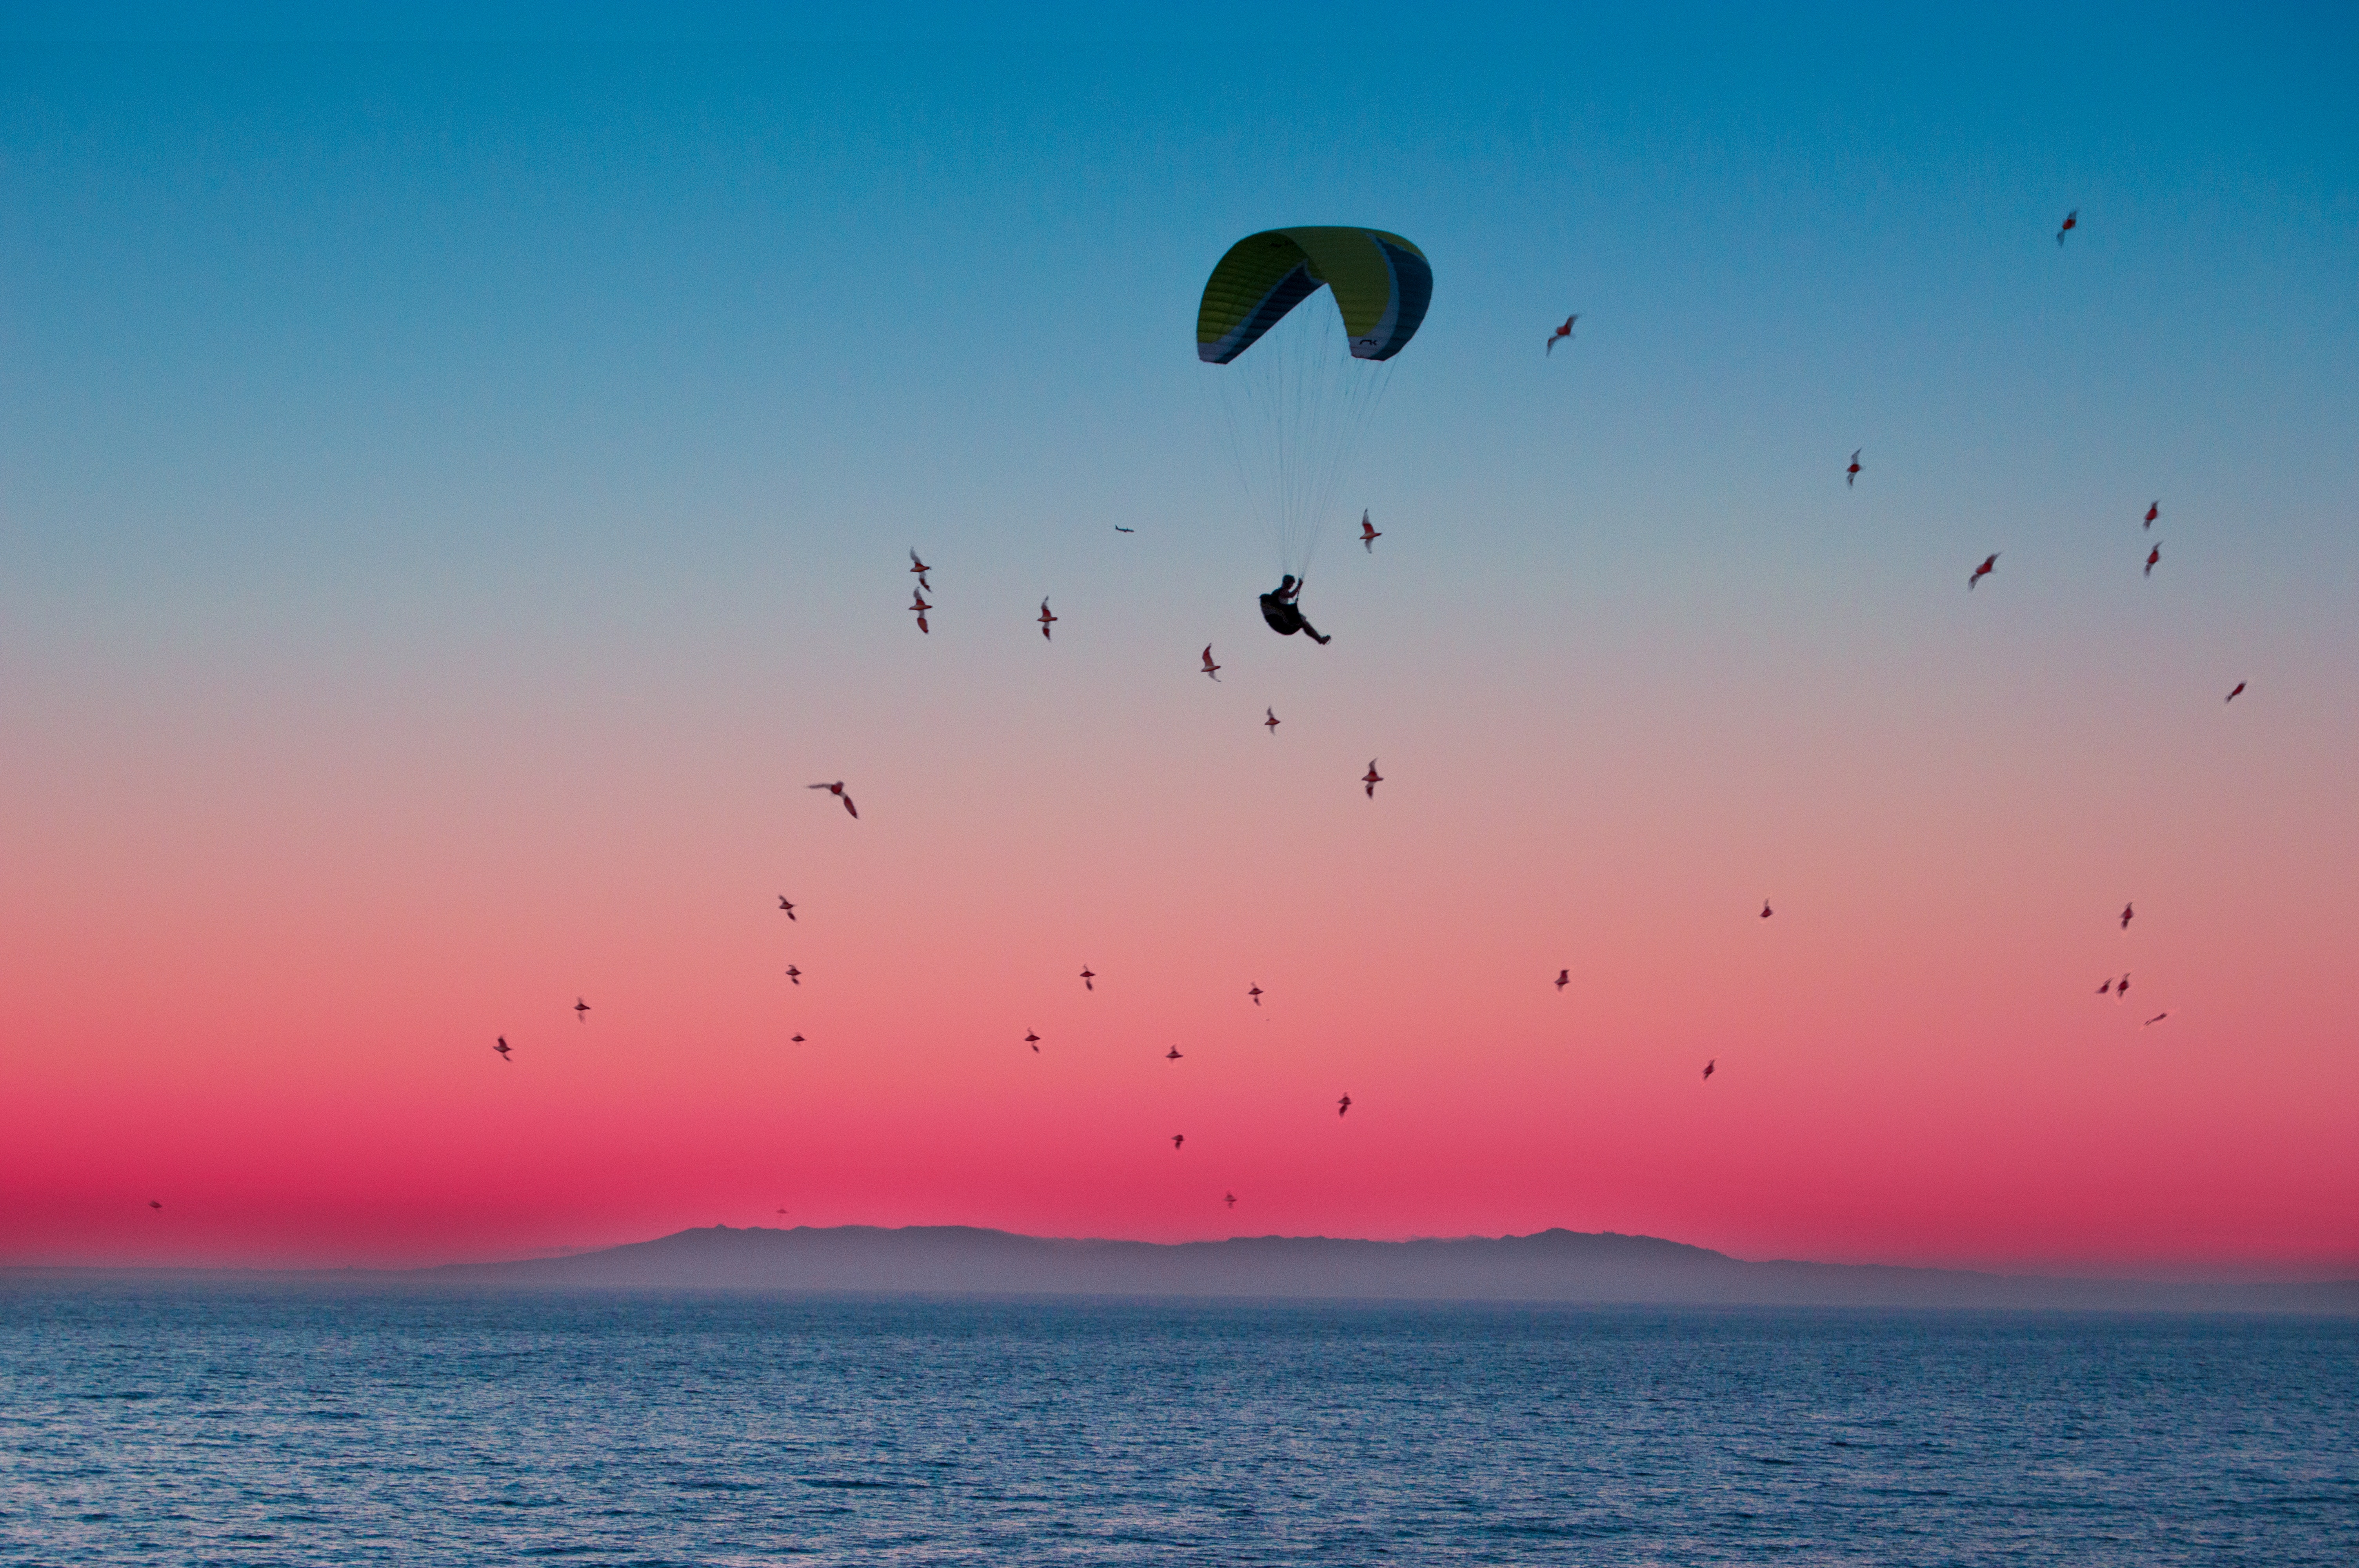 115708 download wallpaper Sports, Birds, Sea, Horizon, Flight, Paragliding, Paraglider, Parachute screensavers and pictures for free